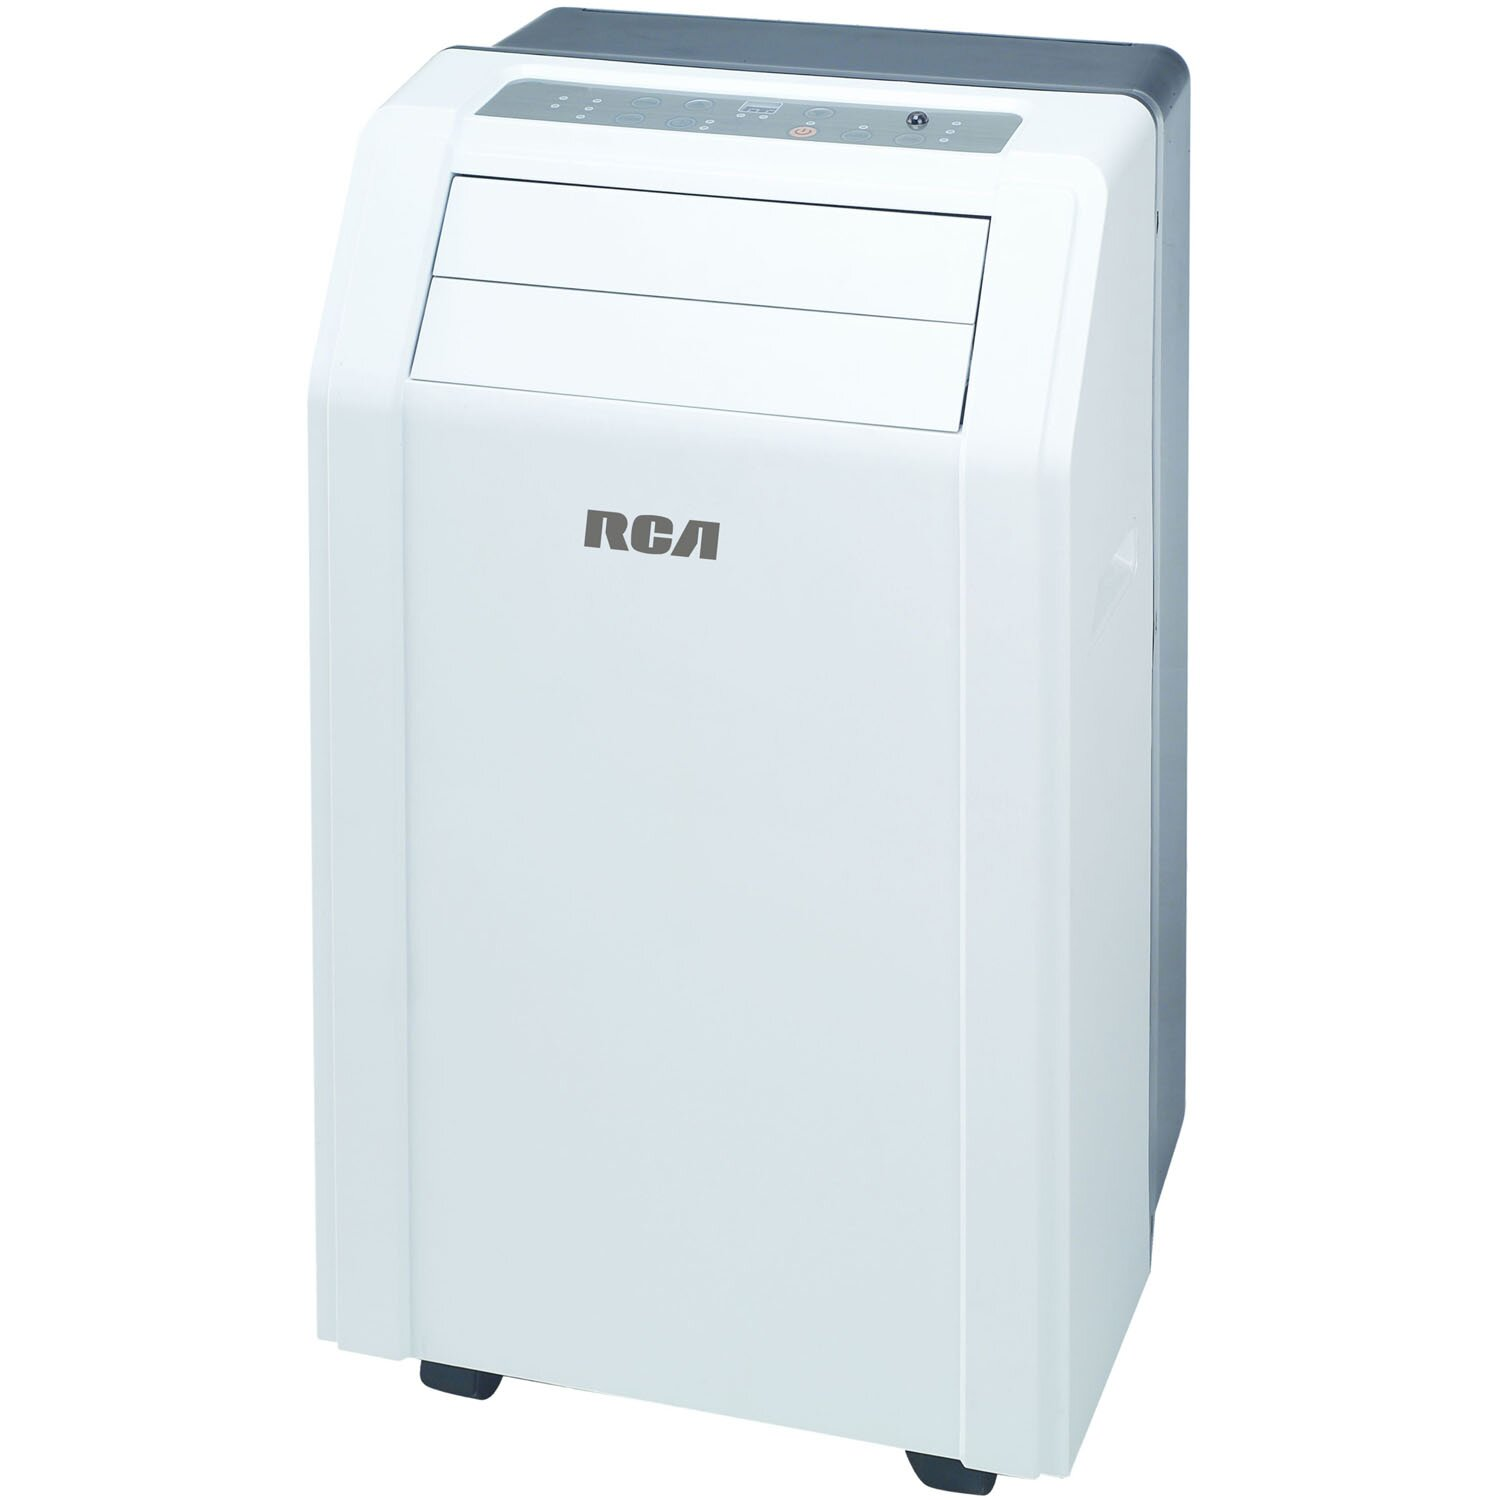 RCA Products 12000 BTU Portable Air Conditioner with Remote & Reviews  #4D707E